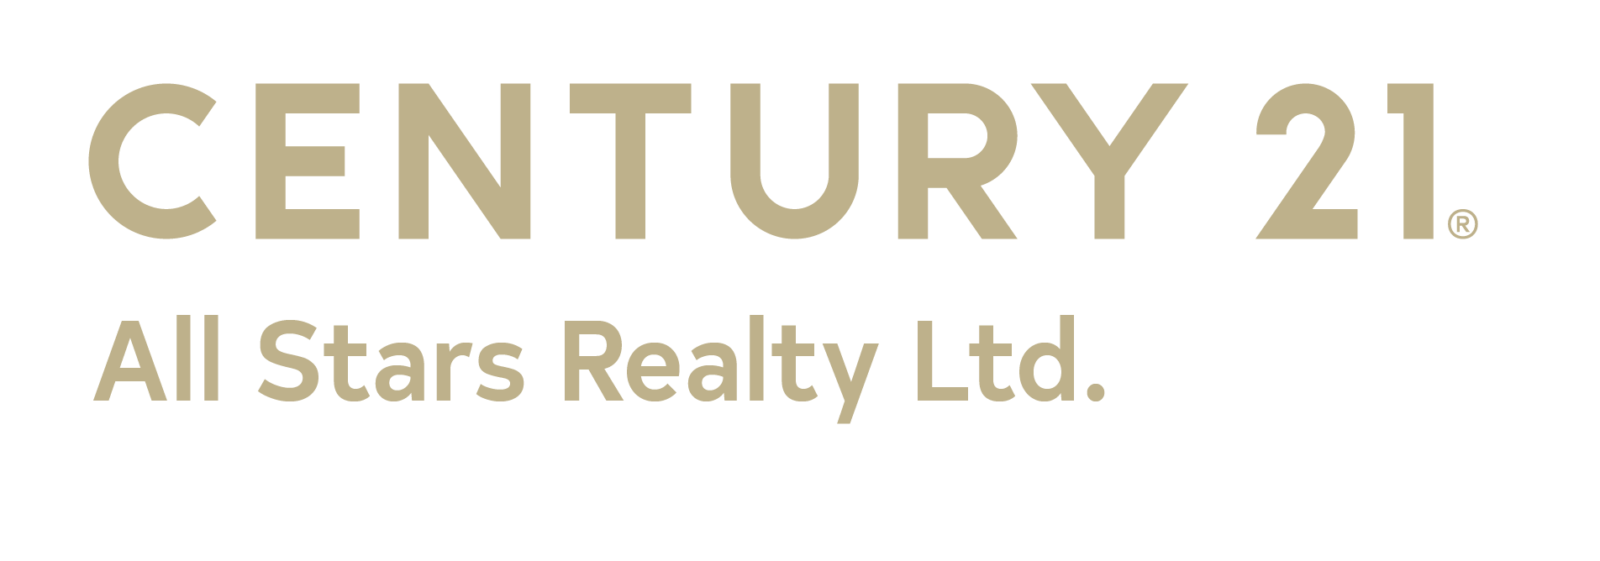 Century 21 All Stars Realty Ltd.